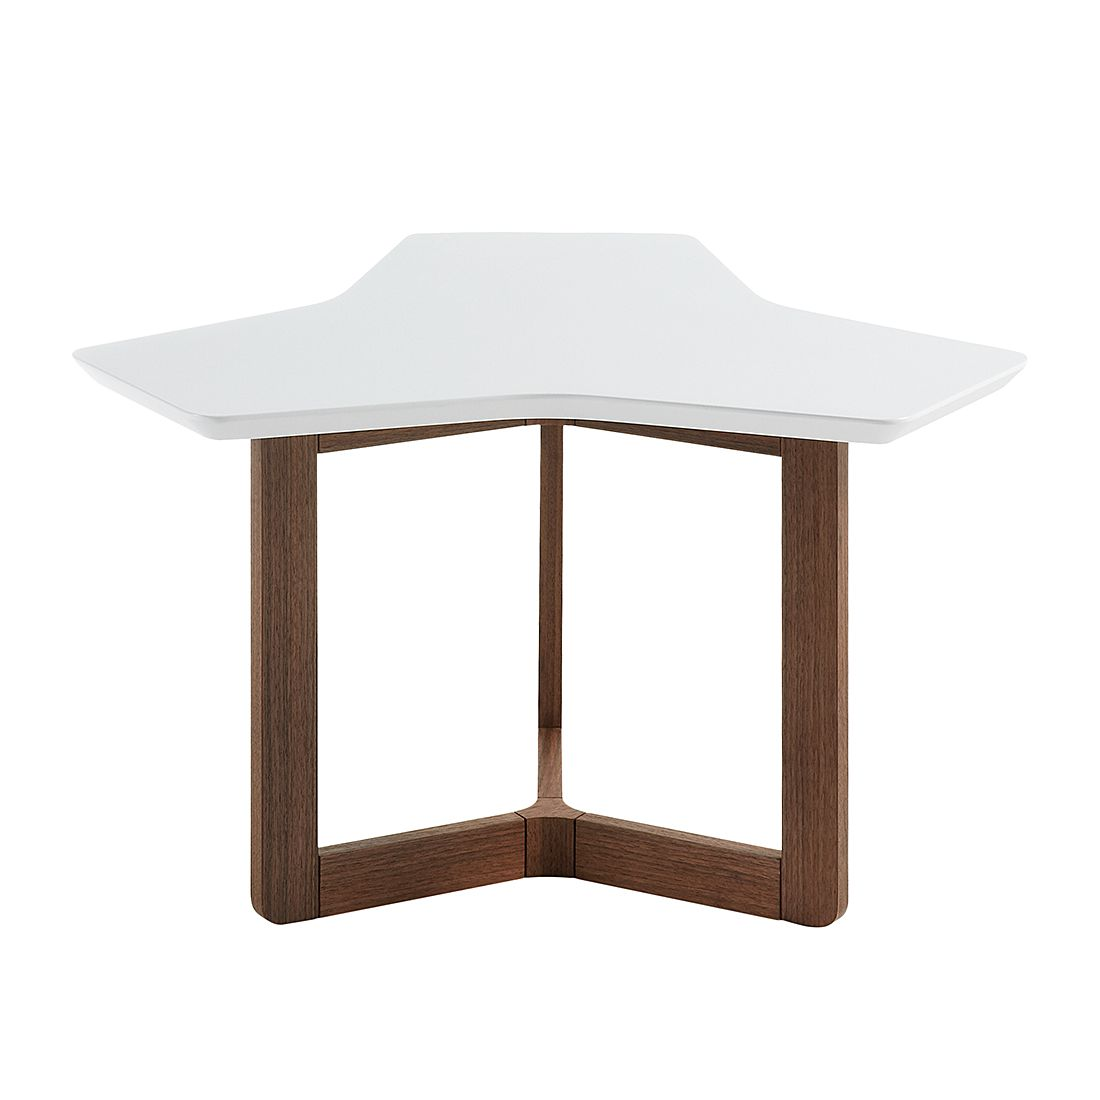 Table d'appoint Solberga - Blanc mat / Noyer, Morteens